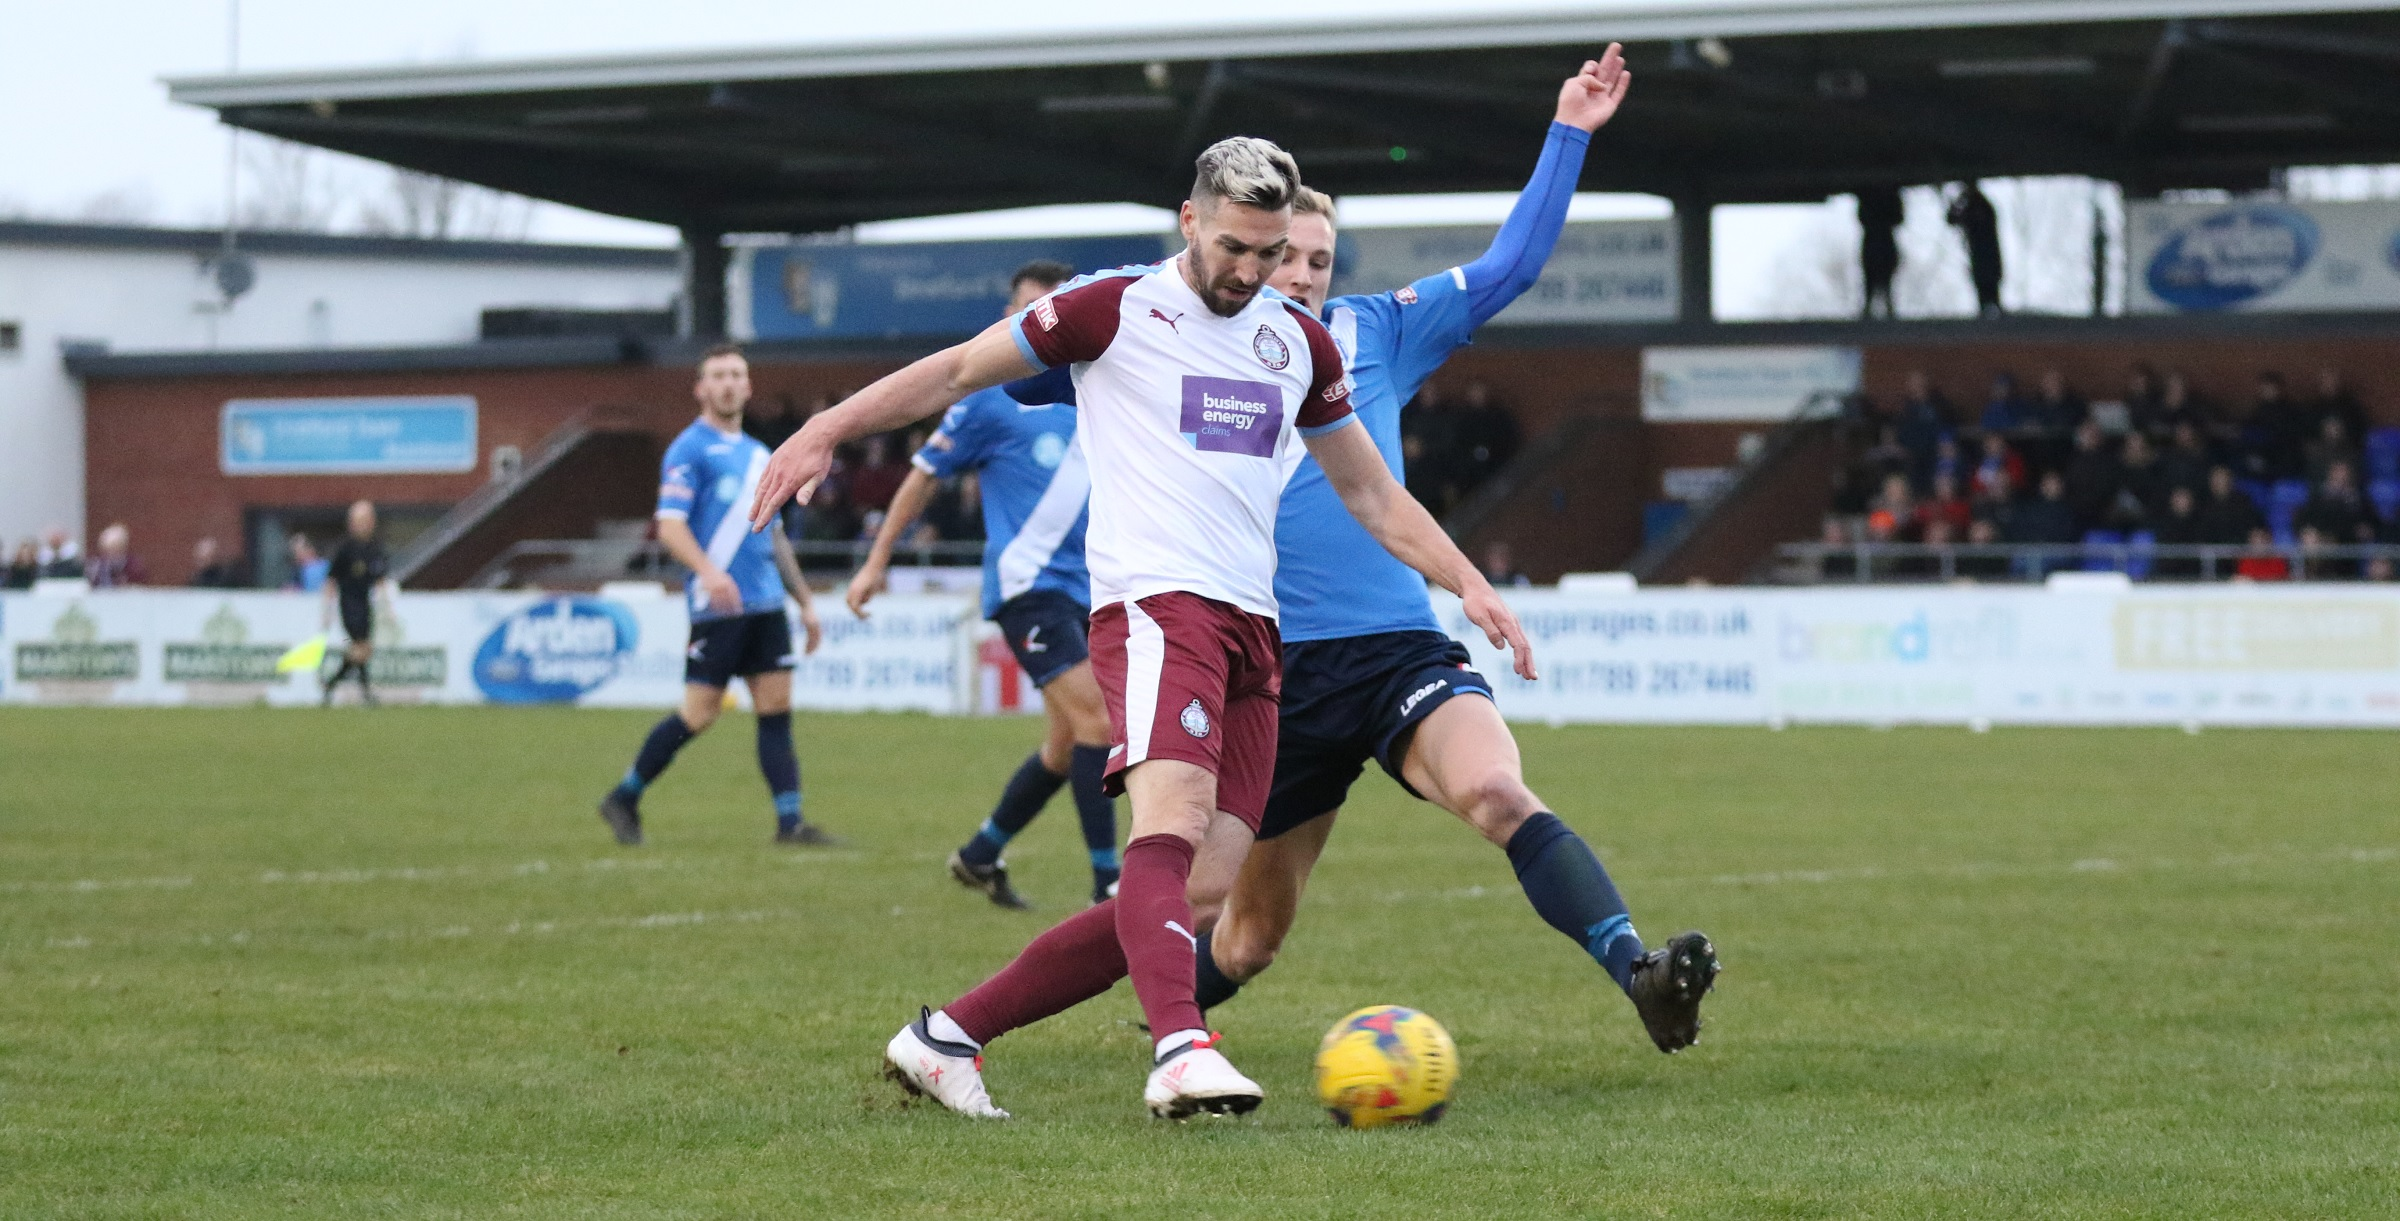 Stratford Town 2-1 South Shields: Late heartbreak for 10-man Mariners